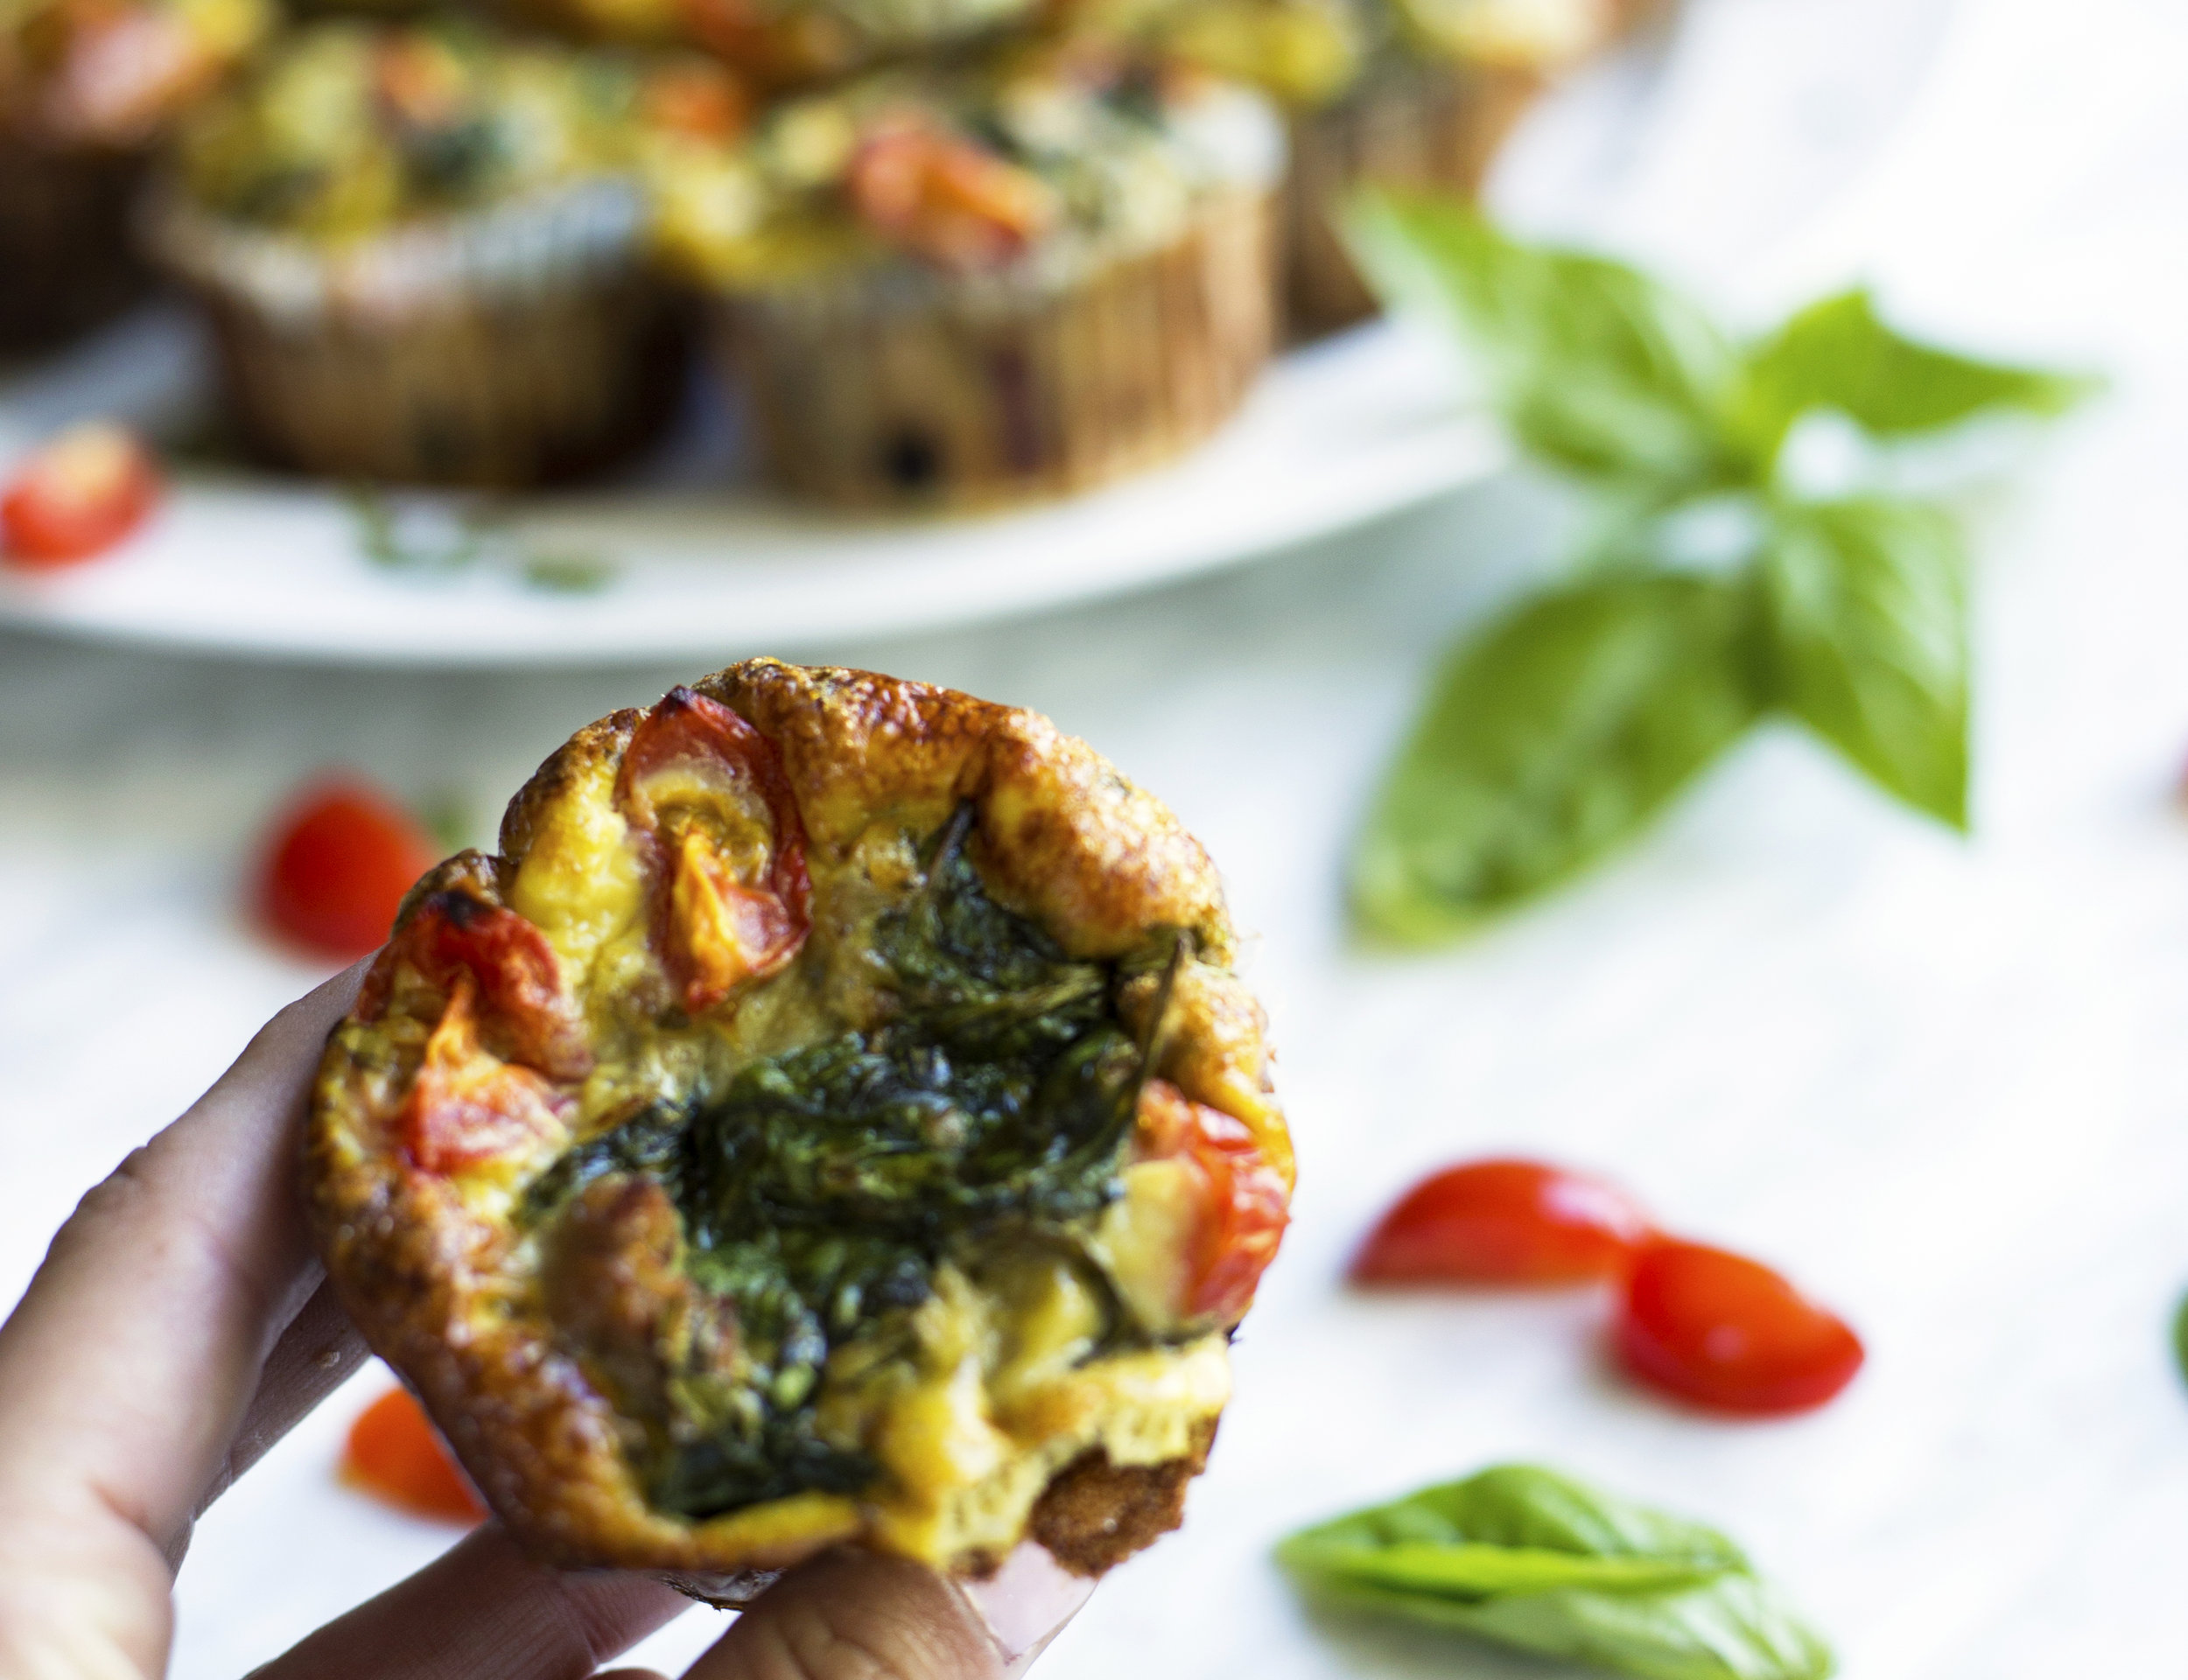 Quick easy egg muffin recipe, paleo, gluten free and whole 30 friendly